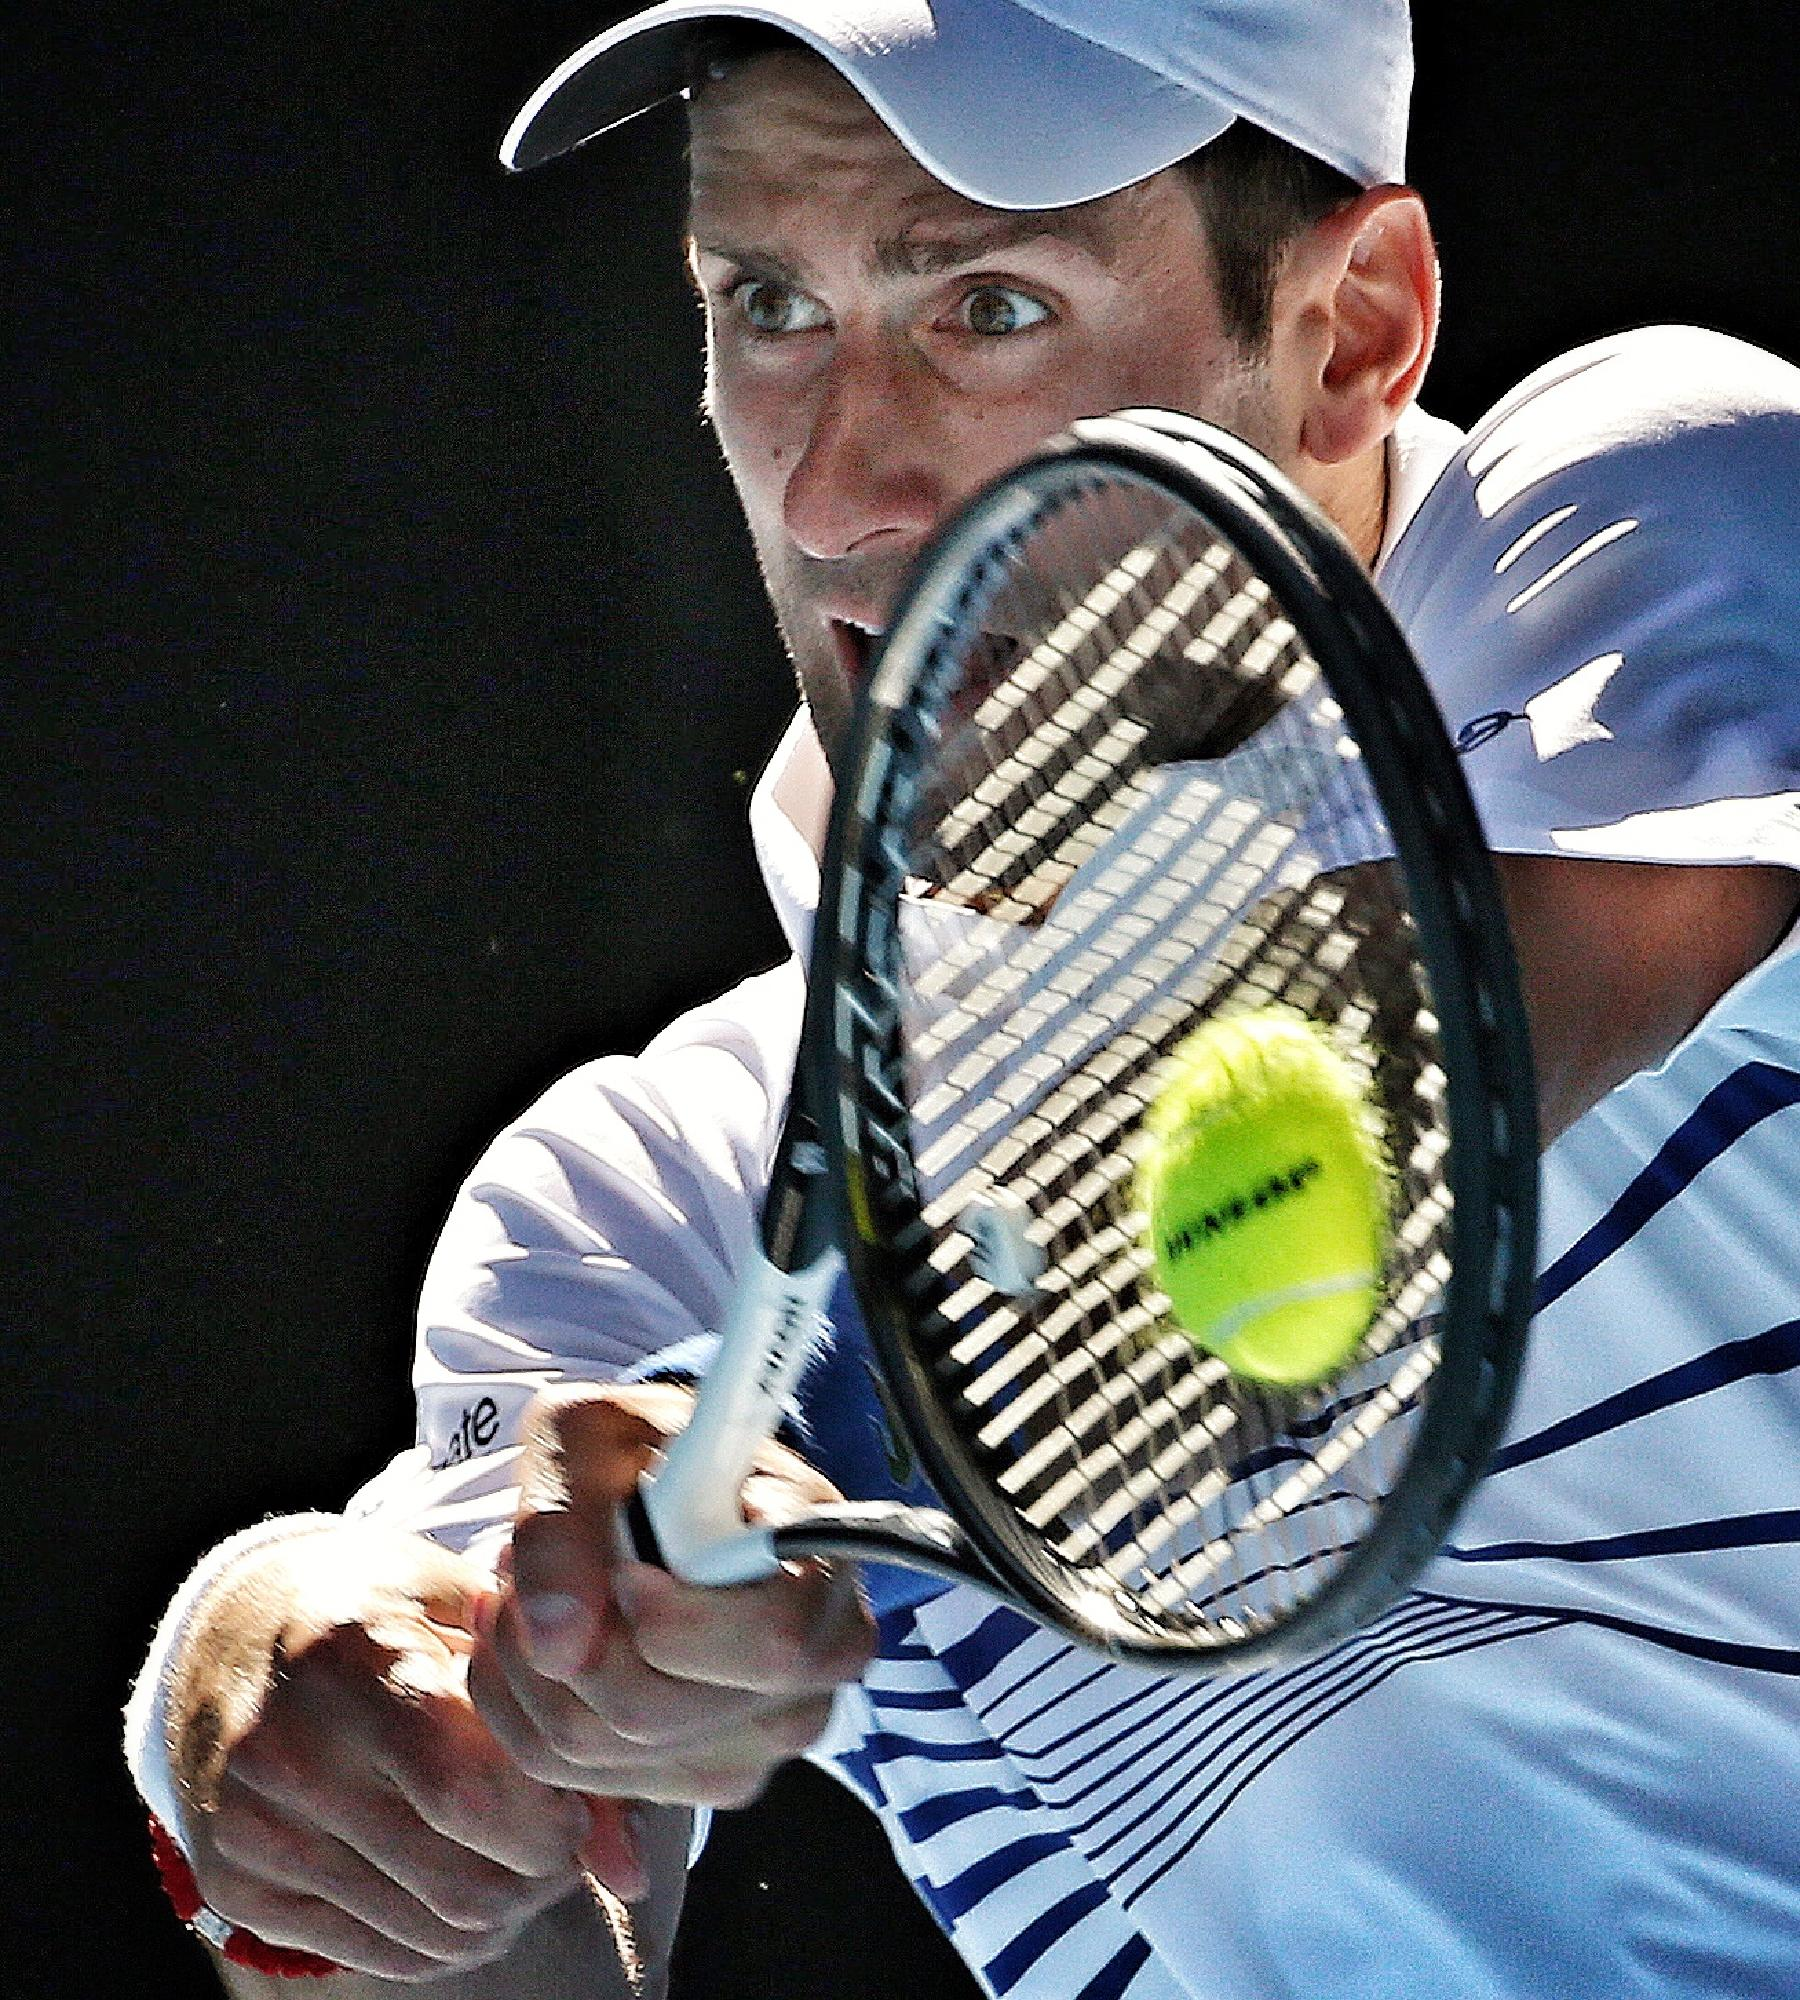 Novak Djokovic has only eyes for the ball. Picture: Michael Klein